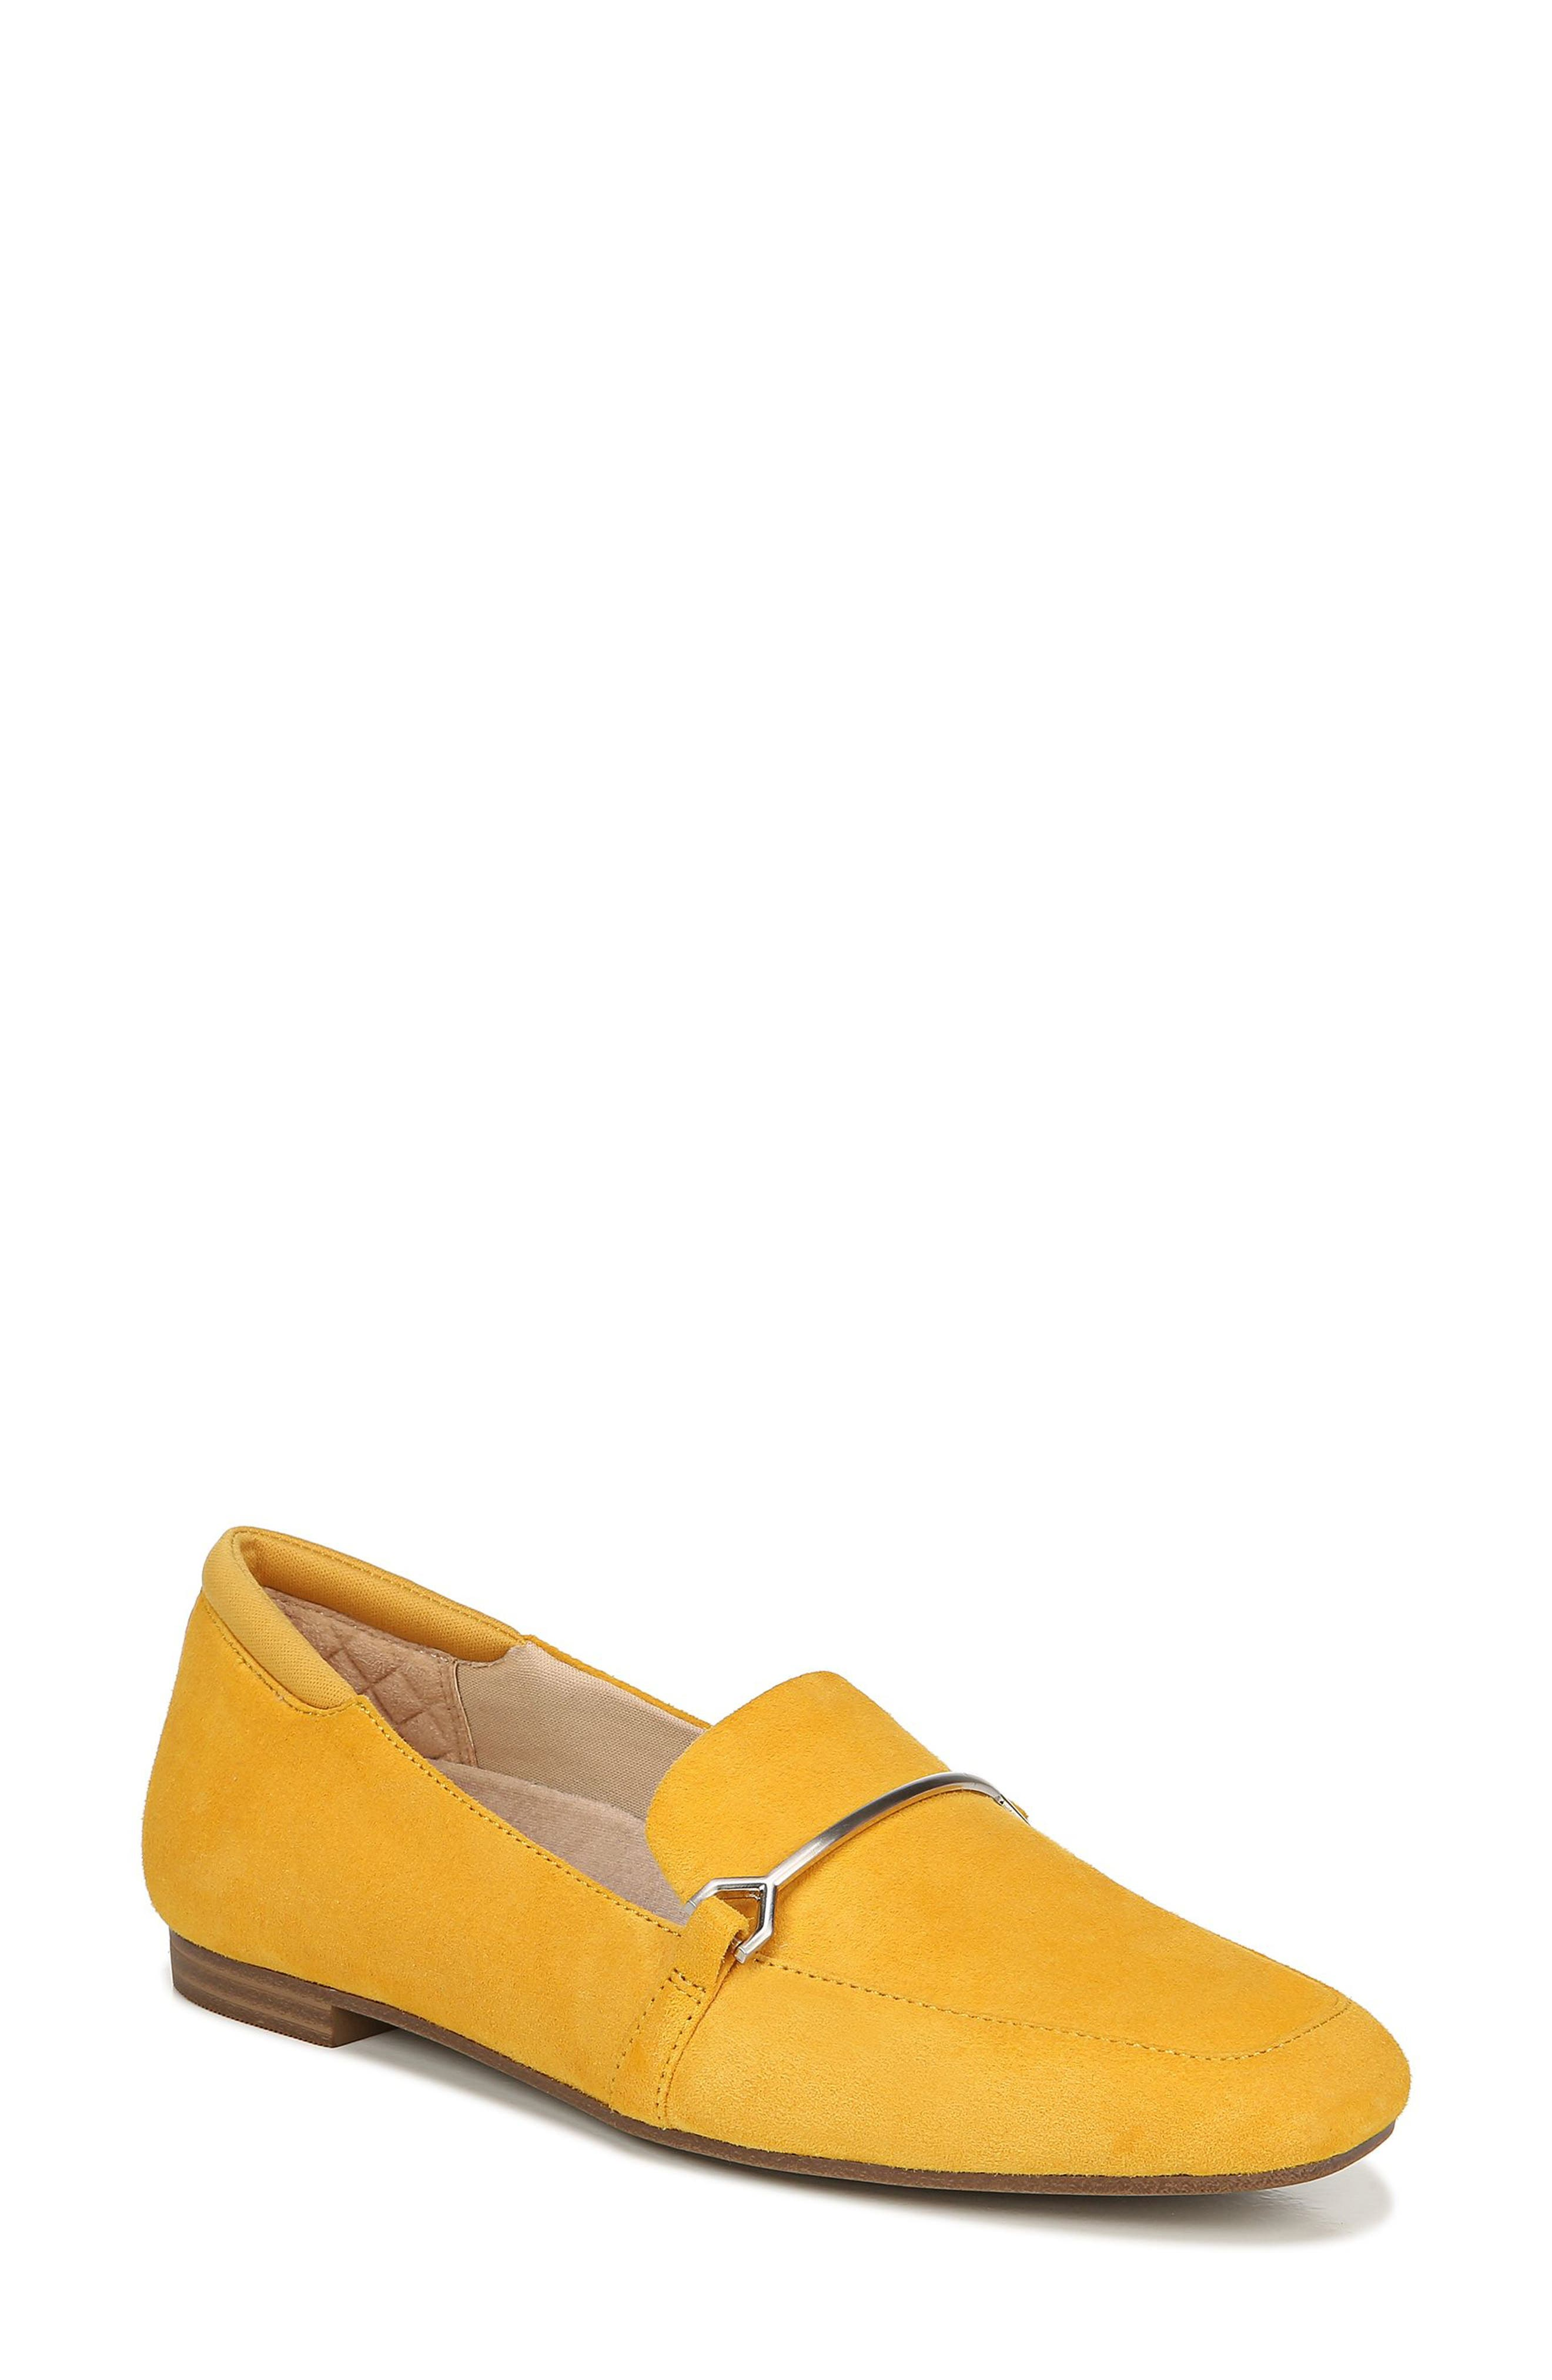 Women's Yellow Loafers \u0026 Oxfords